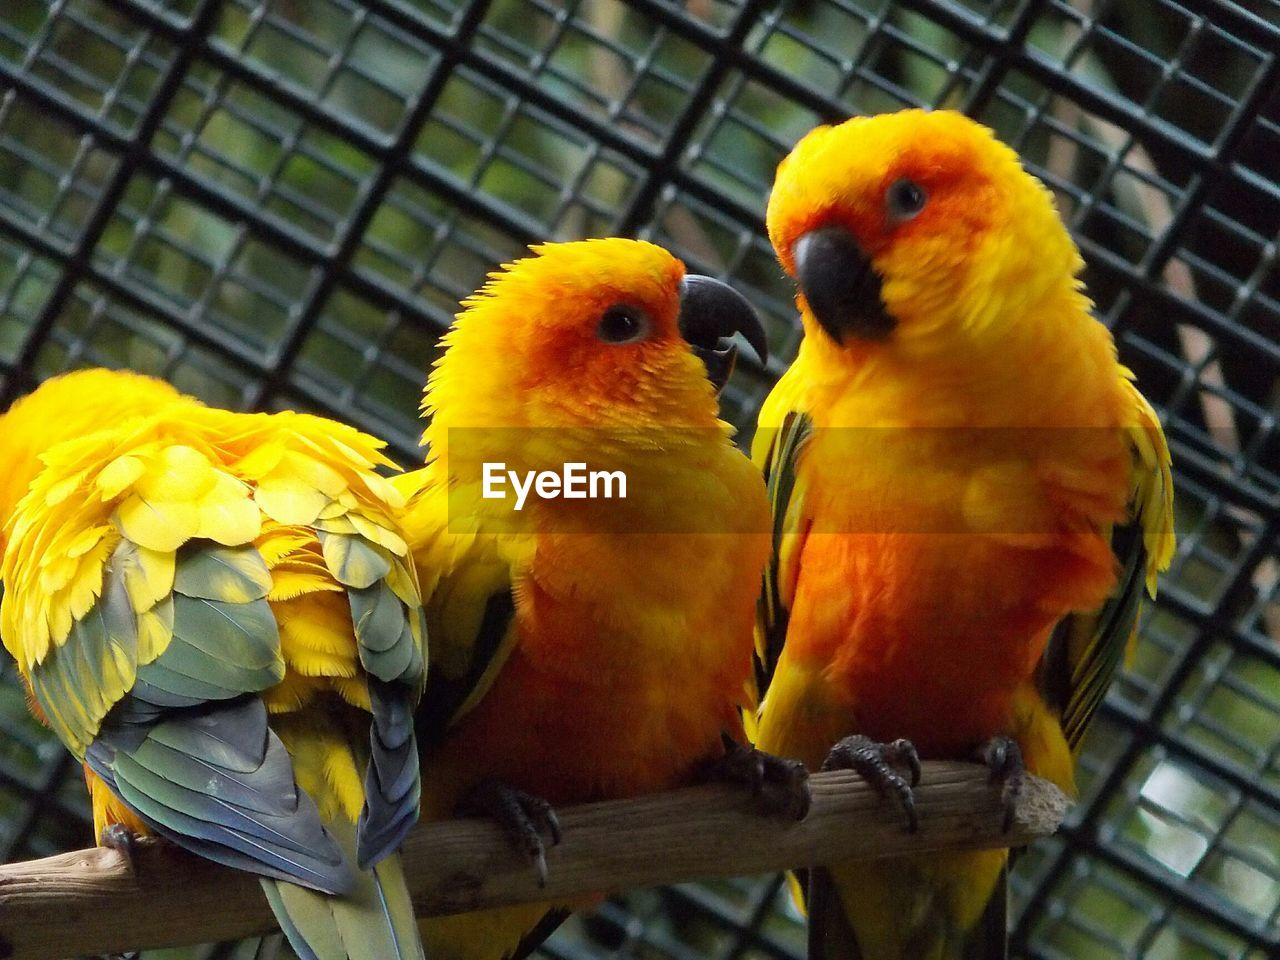 bird, animal themes, cage, birdcage, parrot, yellow, no people, perching, day, outdoors, animals in the wild, togetherness, nature, close-up, domestic animals